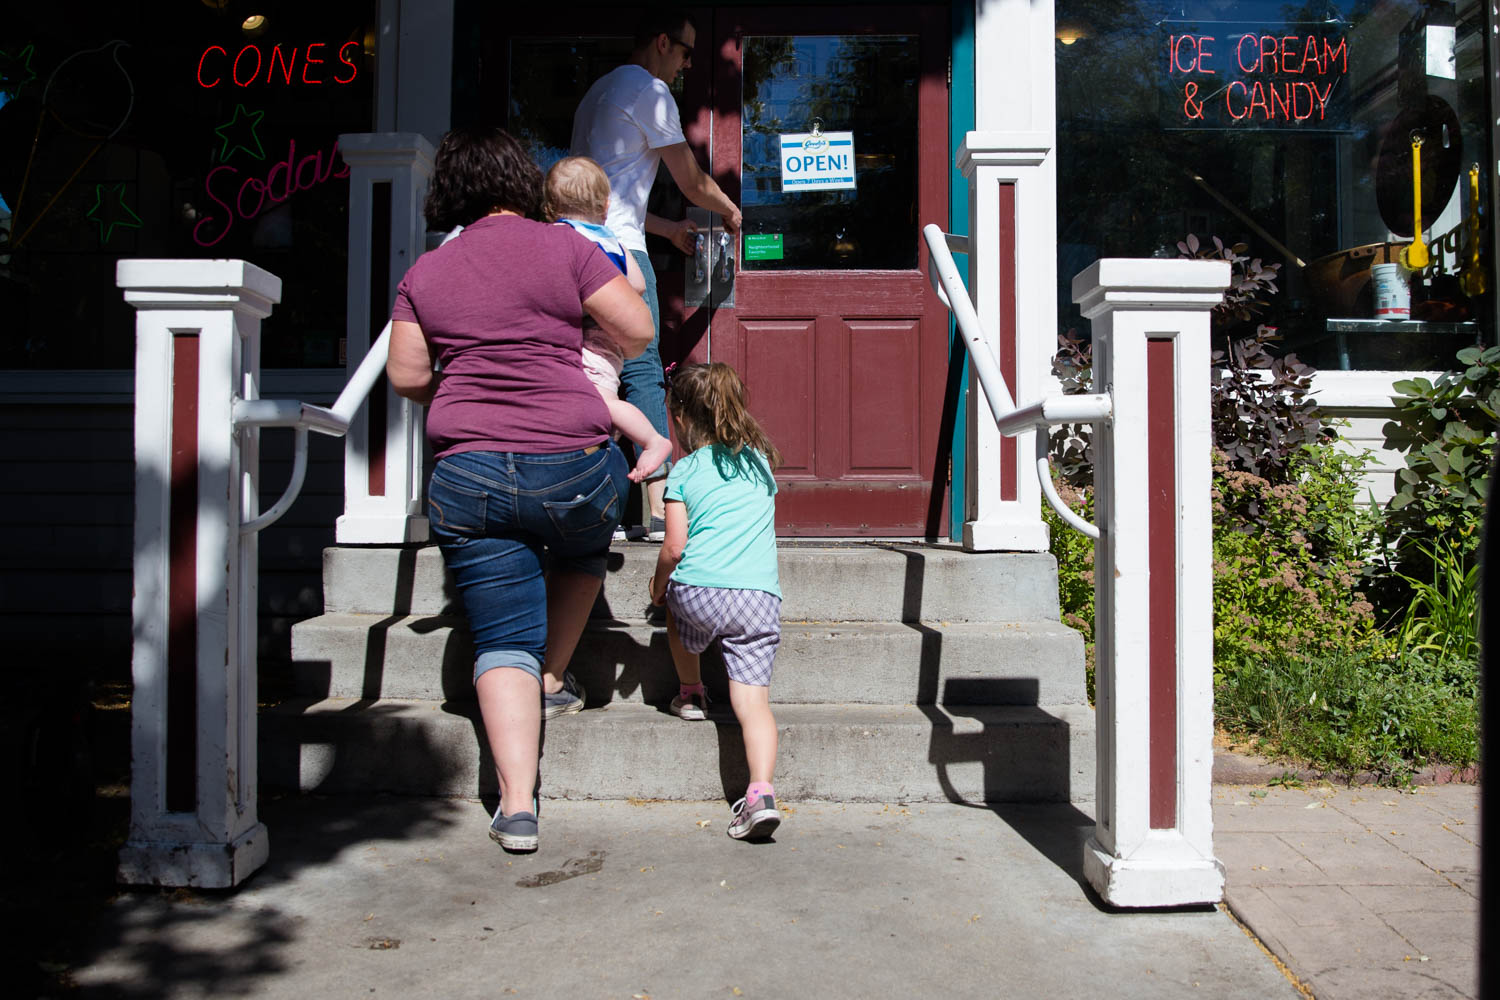 Walking into Goody's Soda Fountain to get themselves a treat, a family of four is excited at Hyde Park in Boise Idaho.